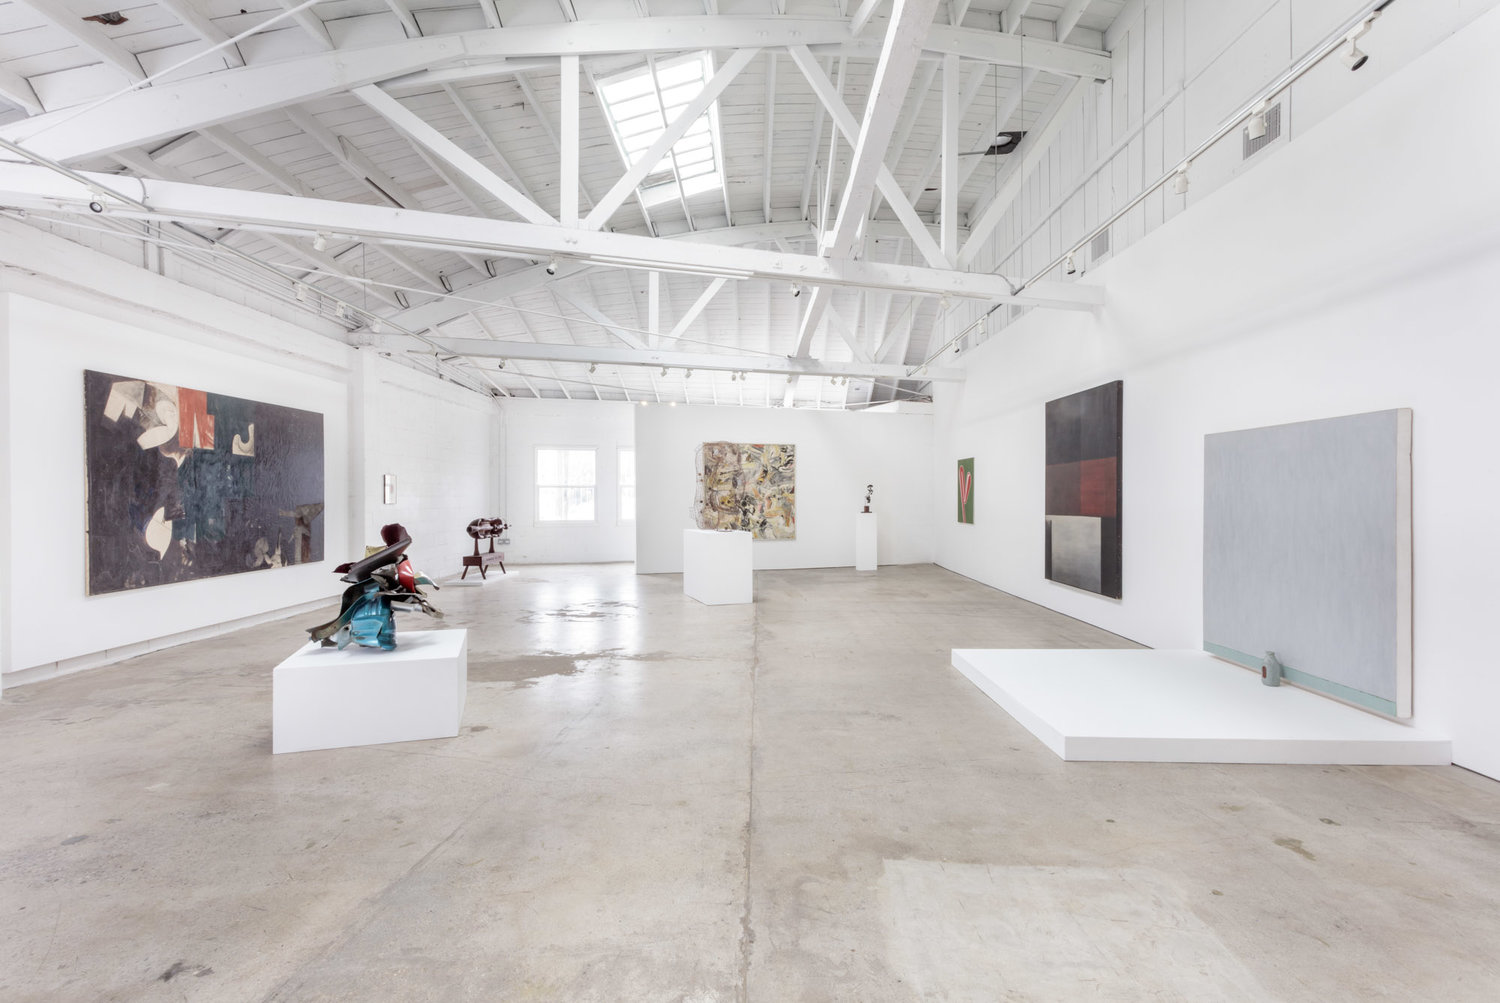 - Dilexi Gallery: Disparate OntologiesJune 22 – August 17, 2019Curated by Laura Whitcomb